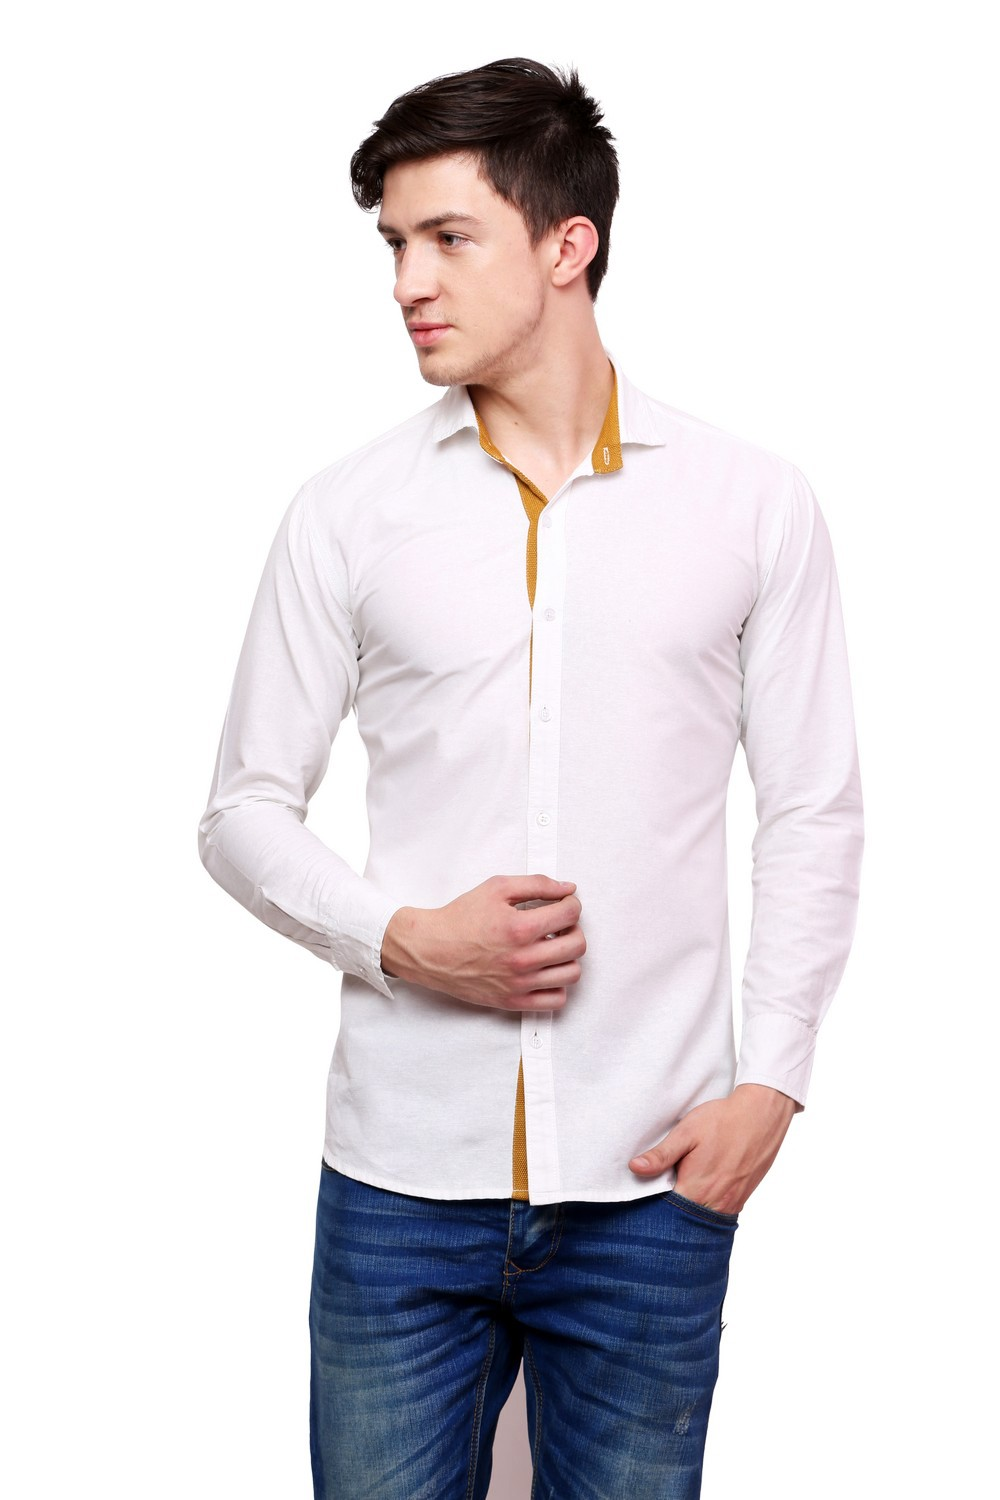 a2d0a2b66b Buy Dennis Lingo Men\'s Solid Casual Full Sleeves Slim Fit White Cotton  Shirt-c101_1_xl Online | Craftsvilla